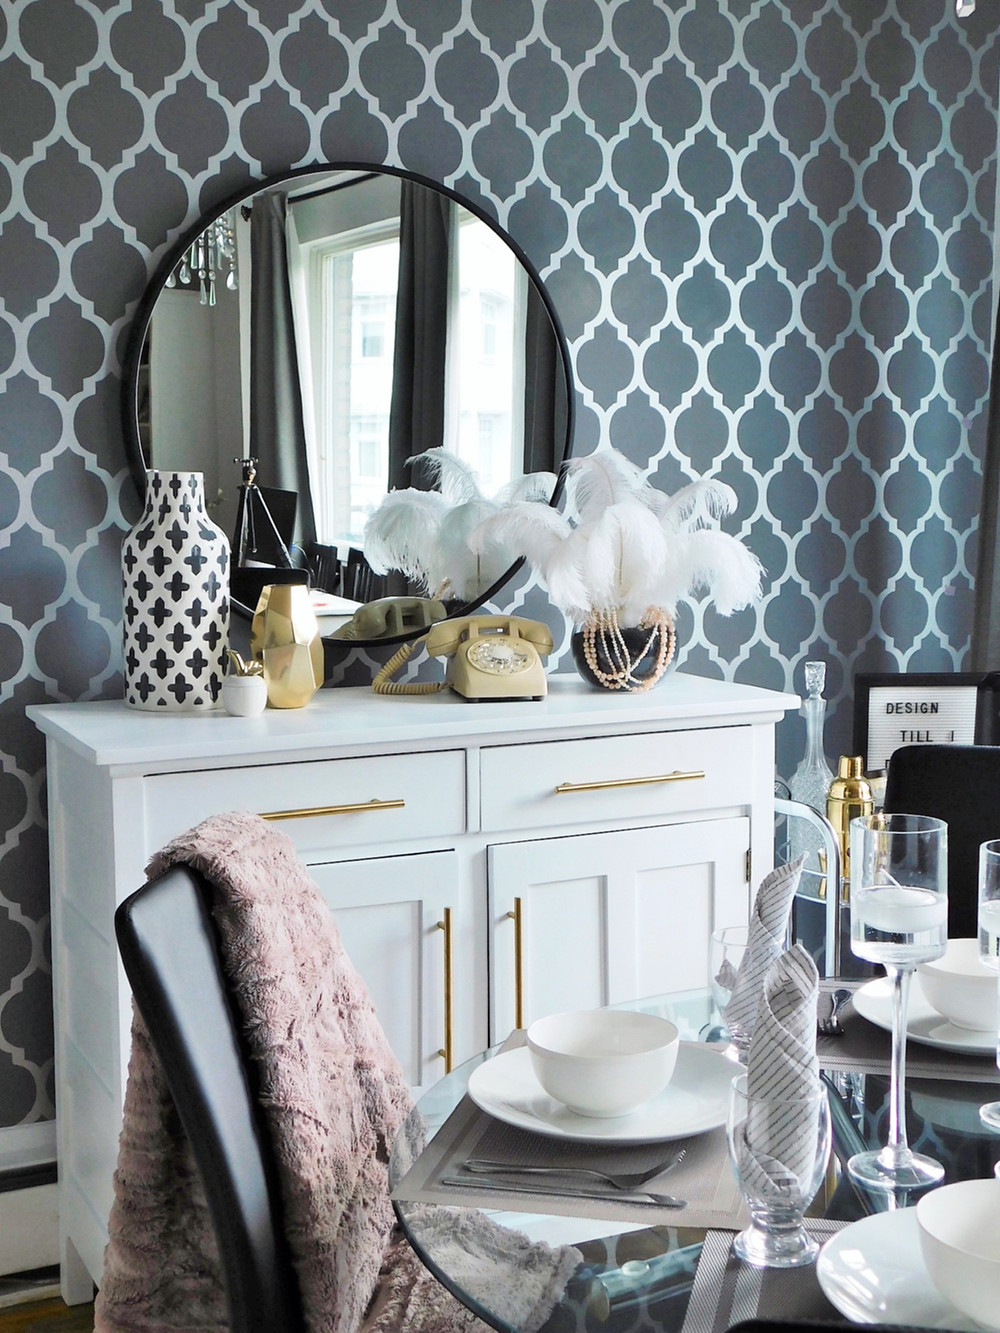 How to style a round mirror above a console table